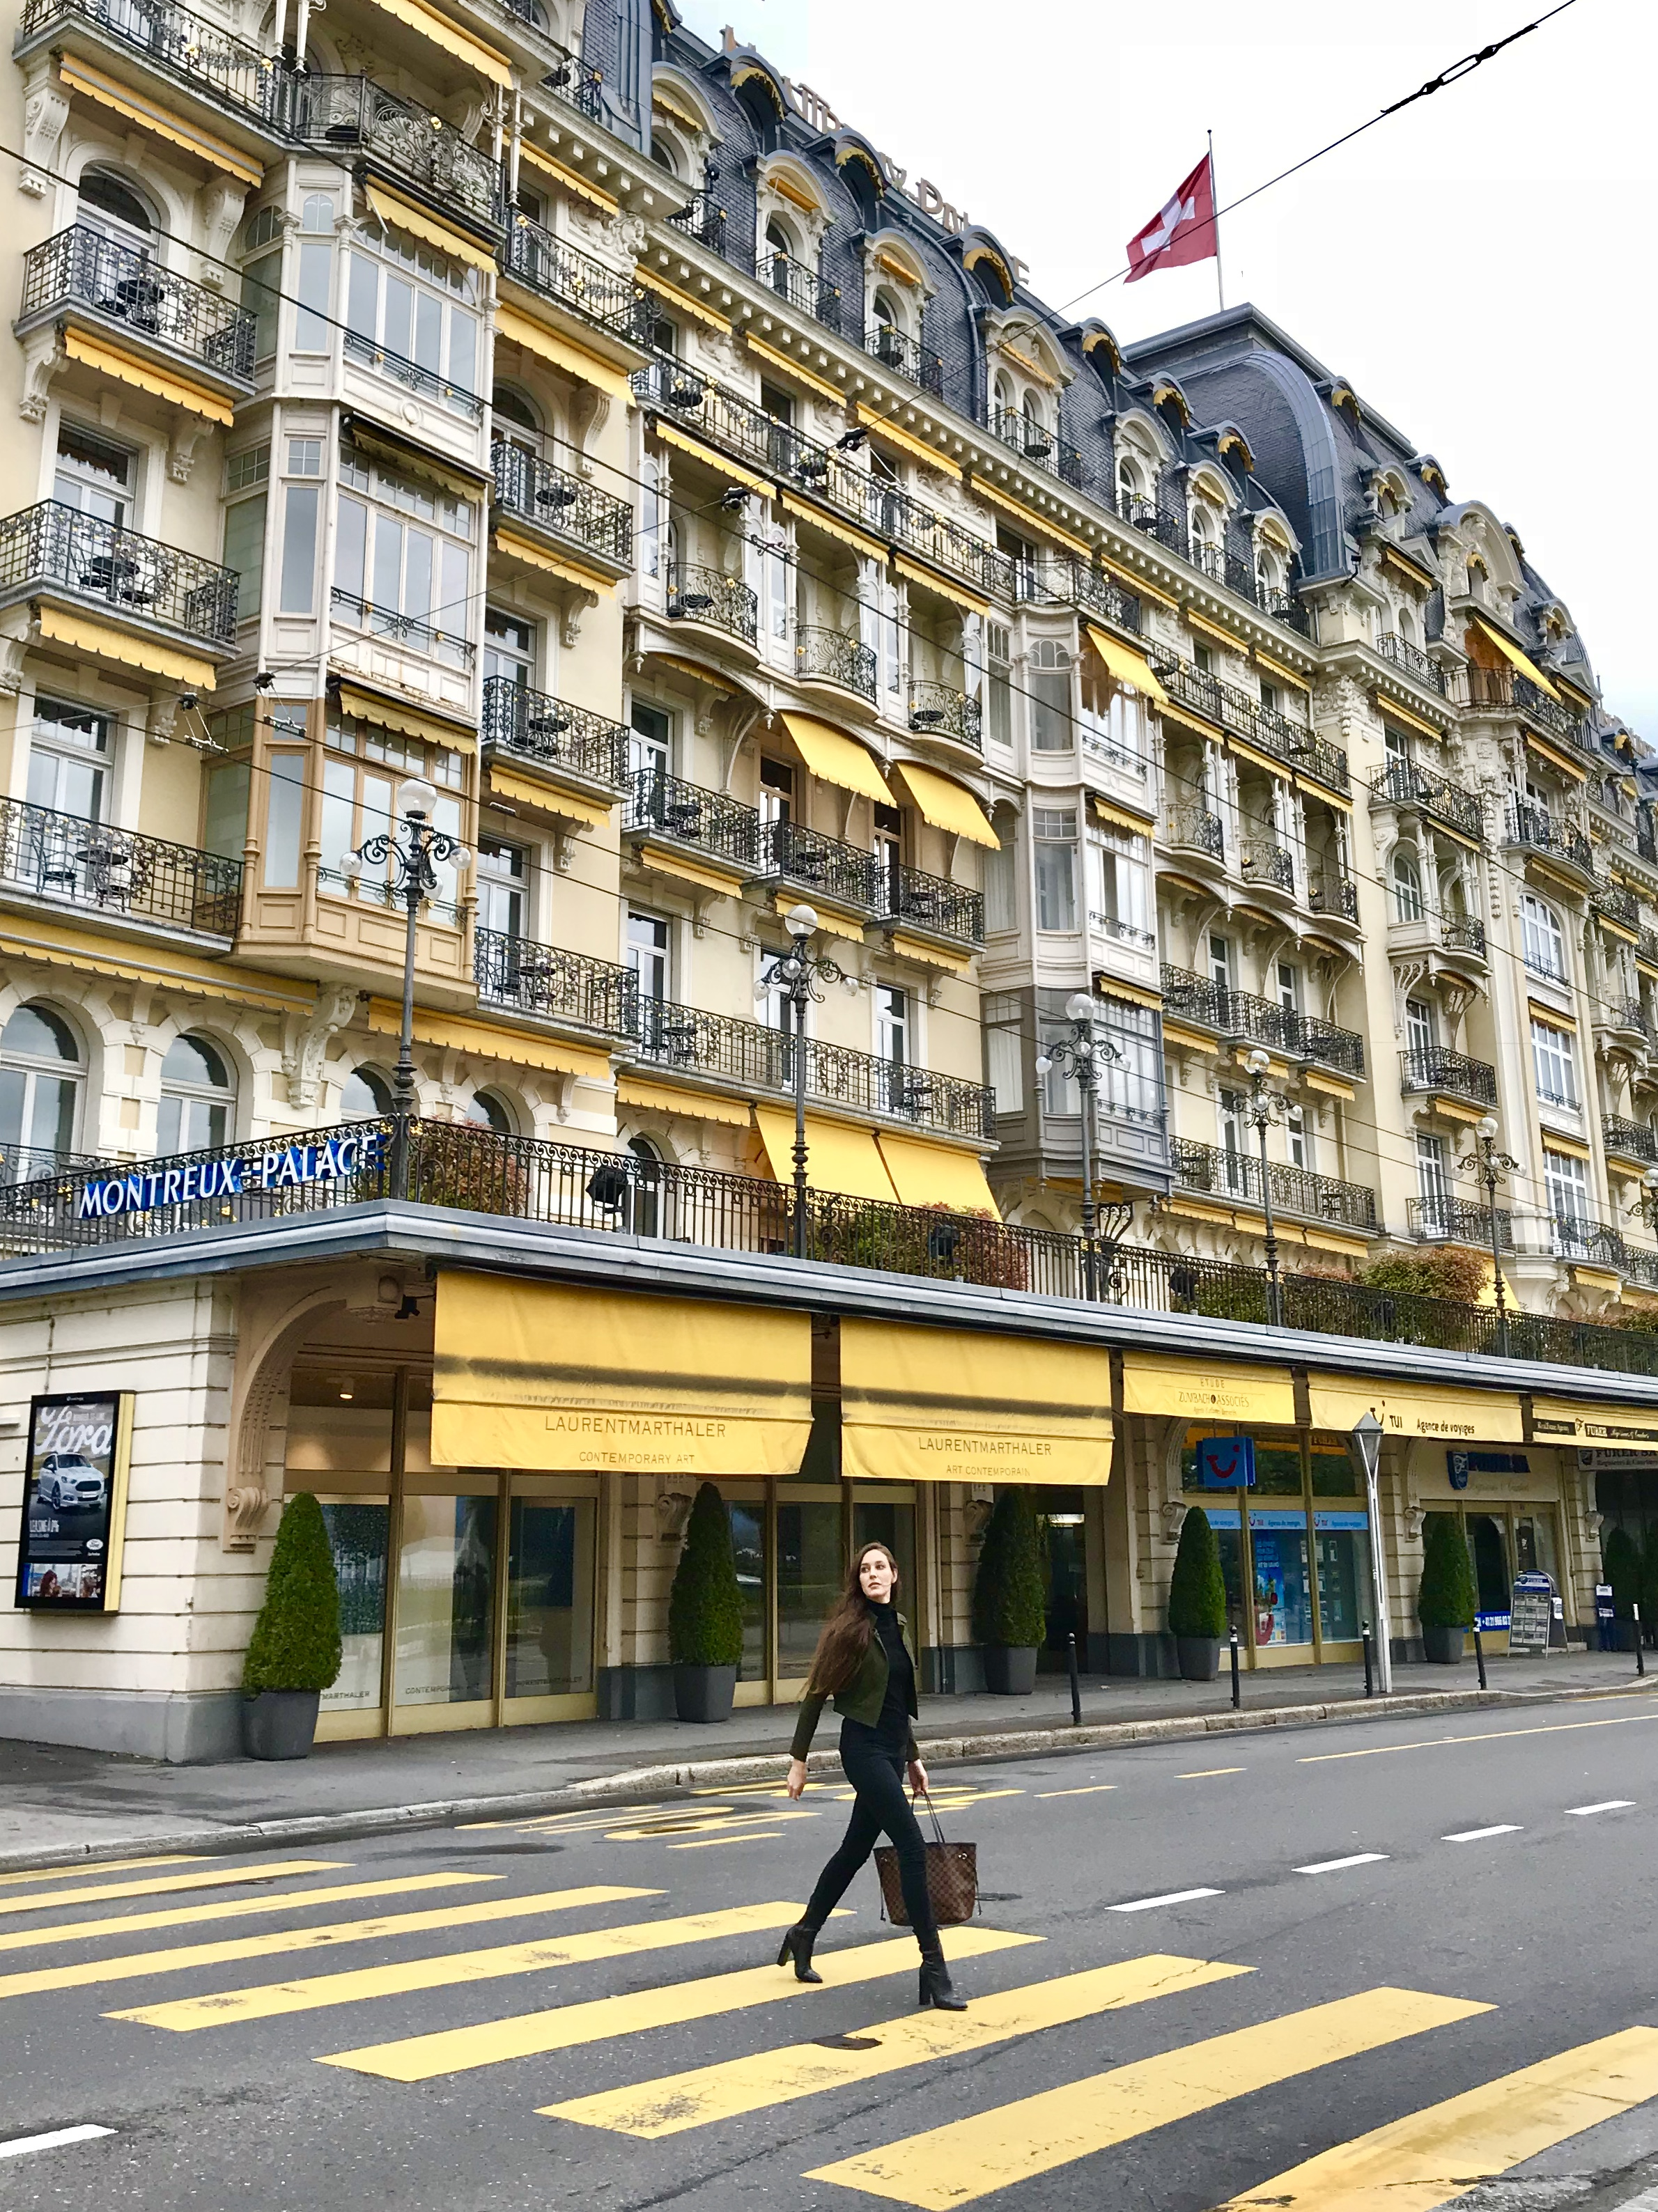 In front of the Fairmont Montreux Palace in Montreux, Switzerland